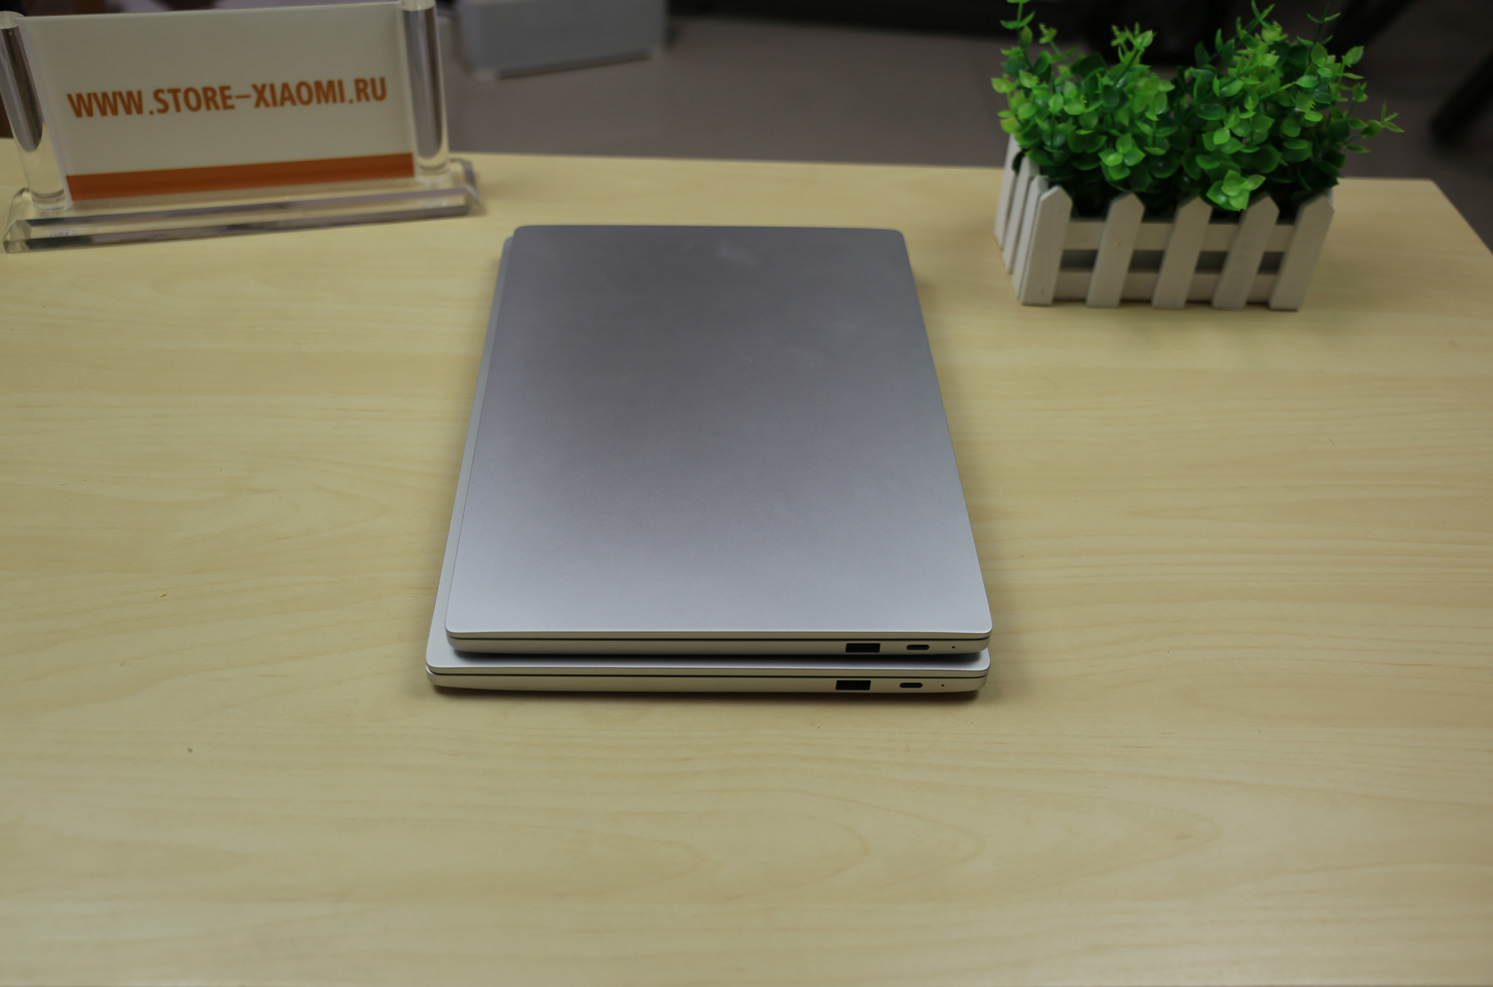 xiaomi-notebook-sravnen-5